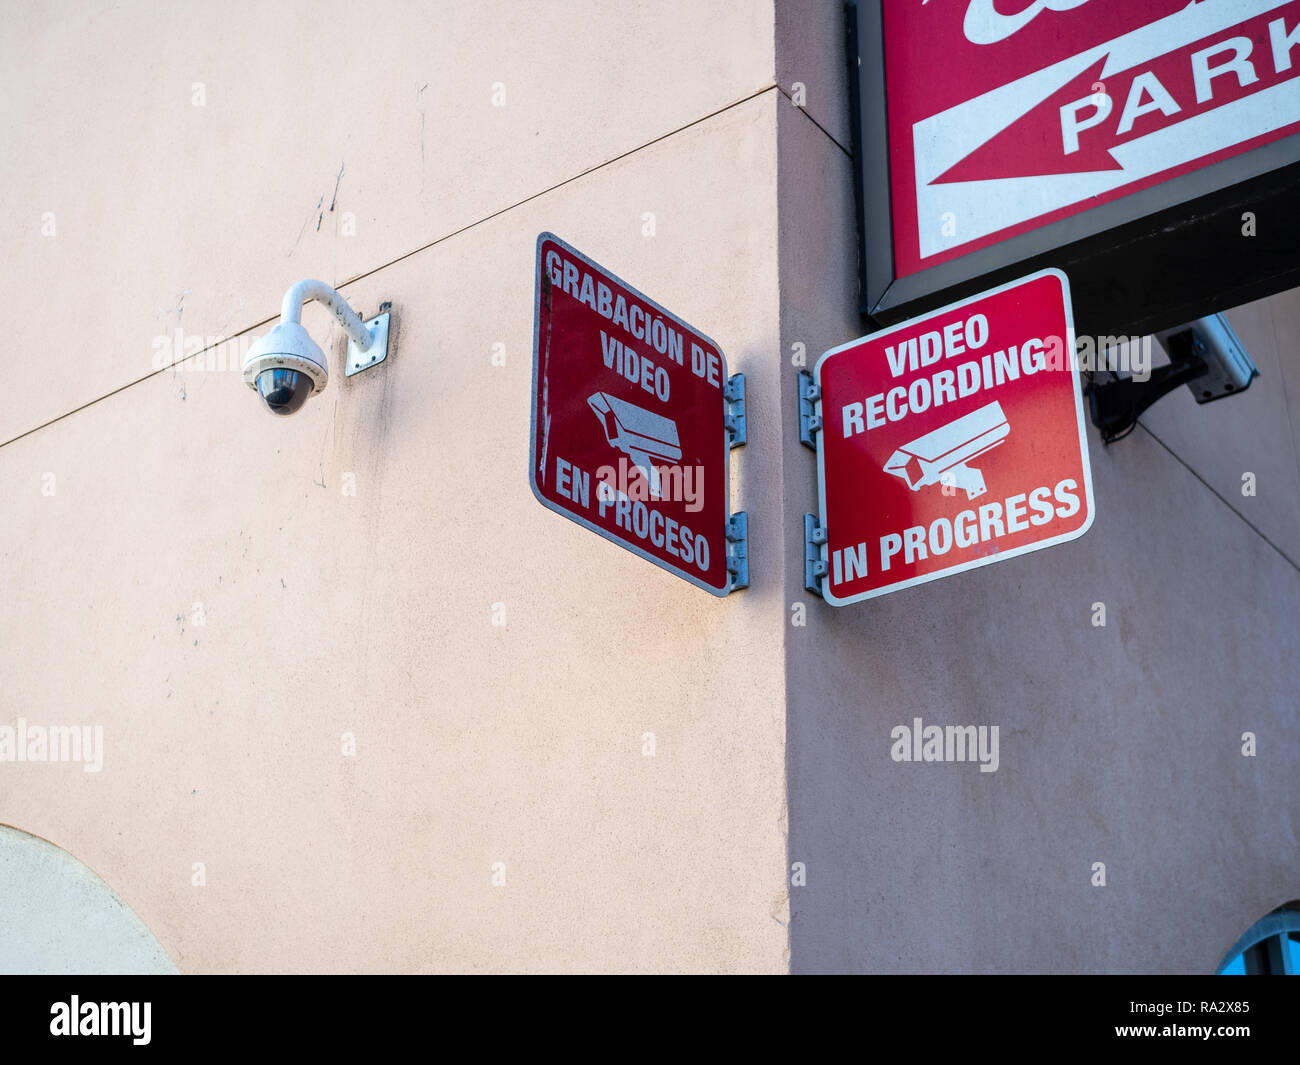 Video recording in progress with surveillance logo along with camera outside of shopping center parking lot - Stock Image